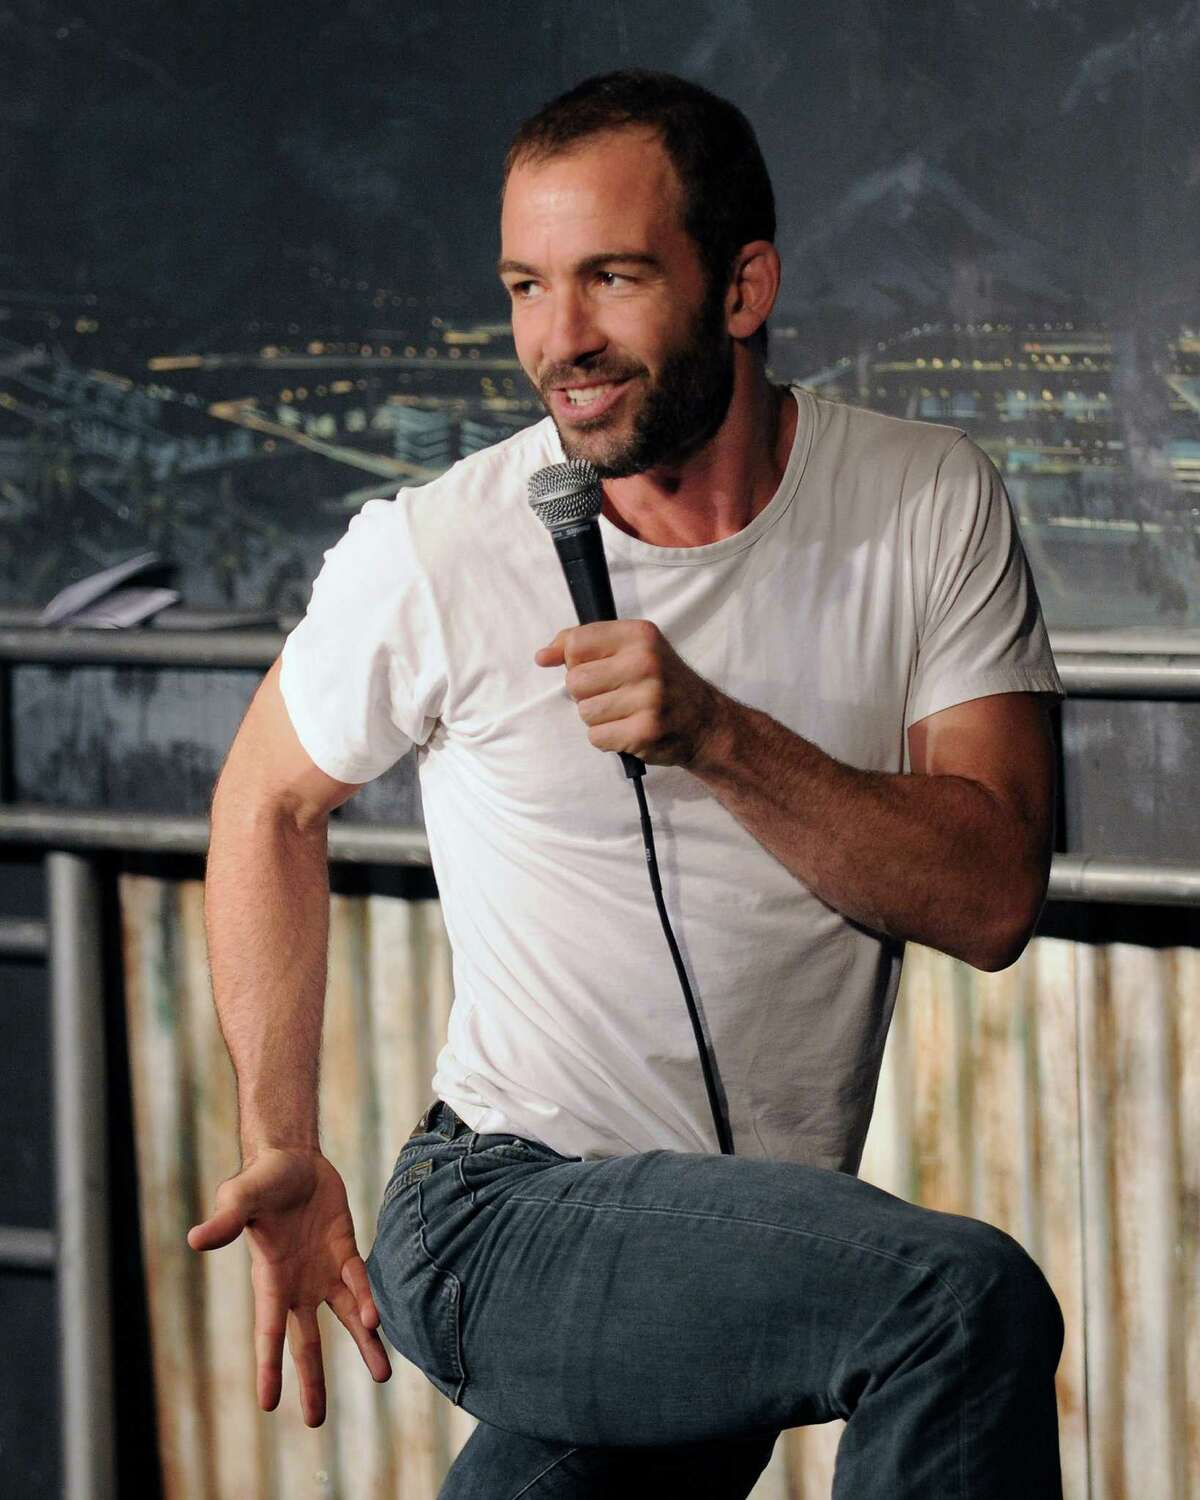 Comedian Bryan Callen tested positive for COVID-19 after performing in San Antonio.